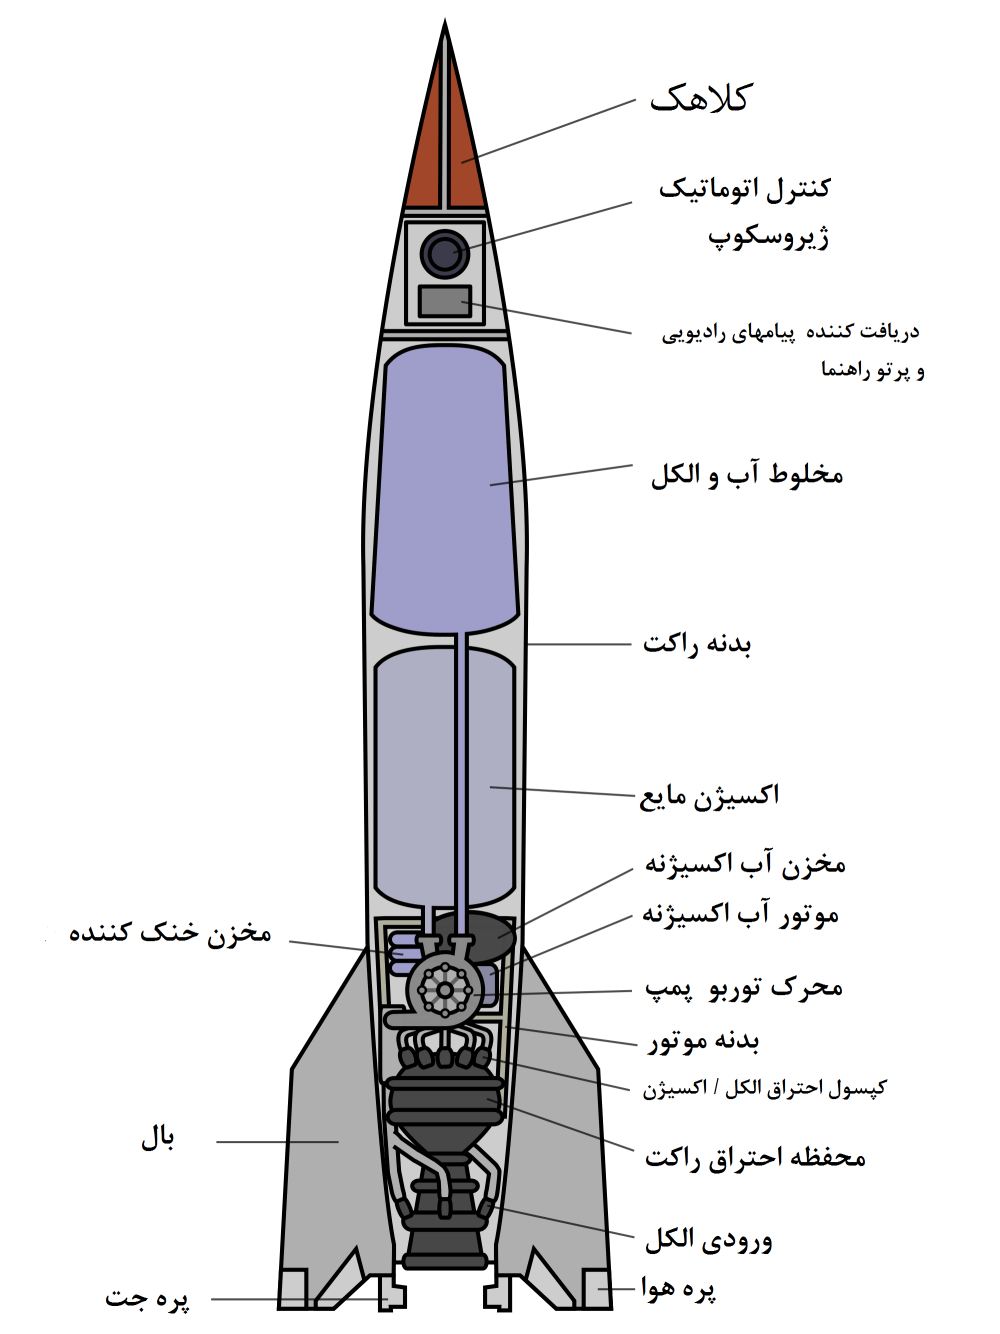 medium resolution of file v 2 rocket diagram with persian labels png